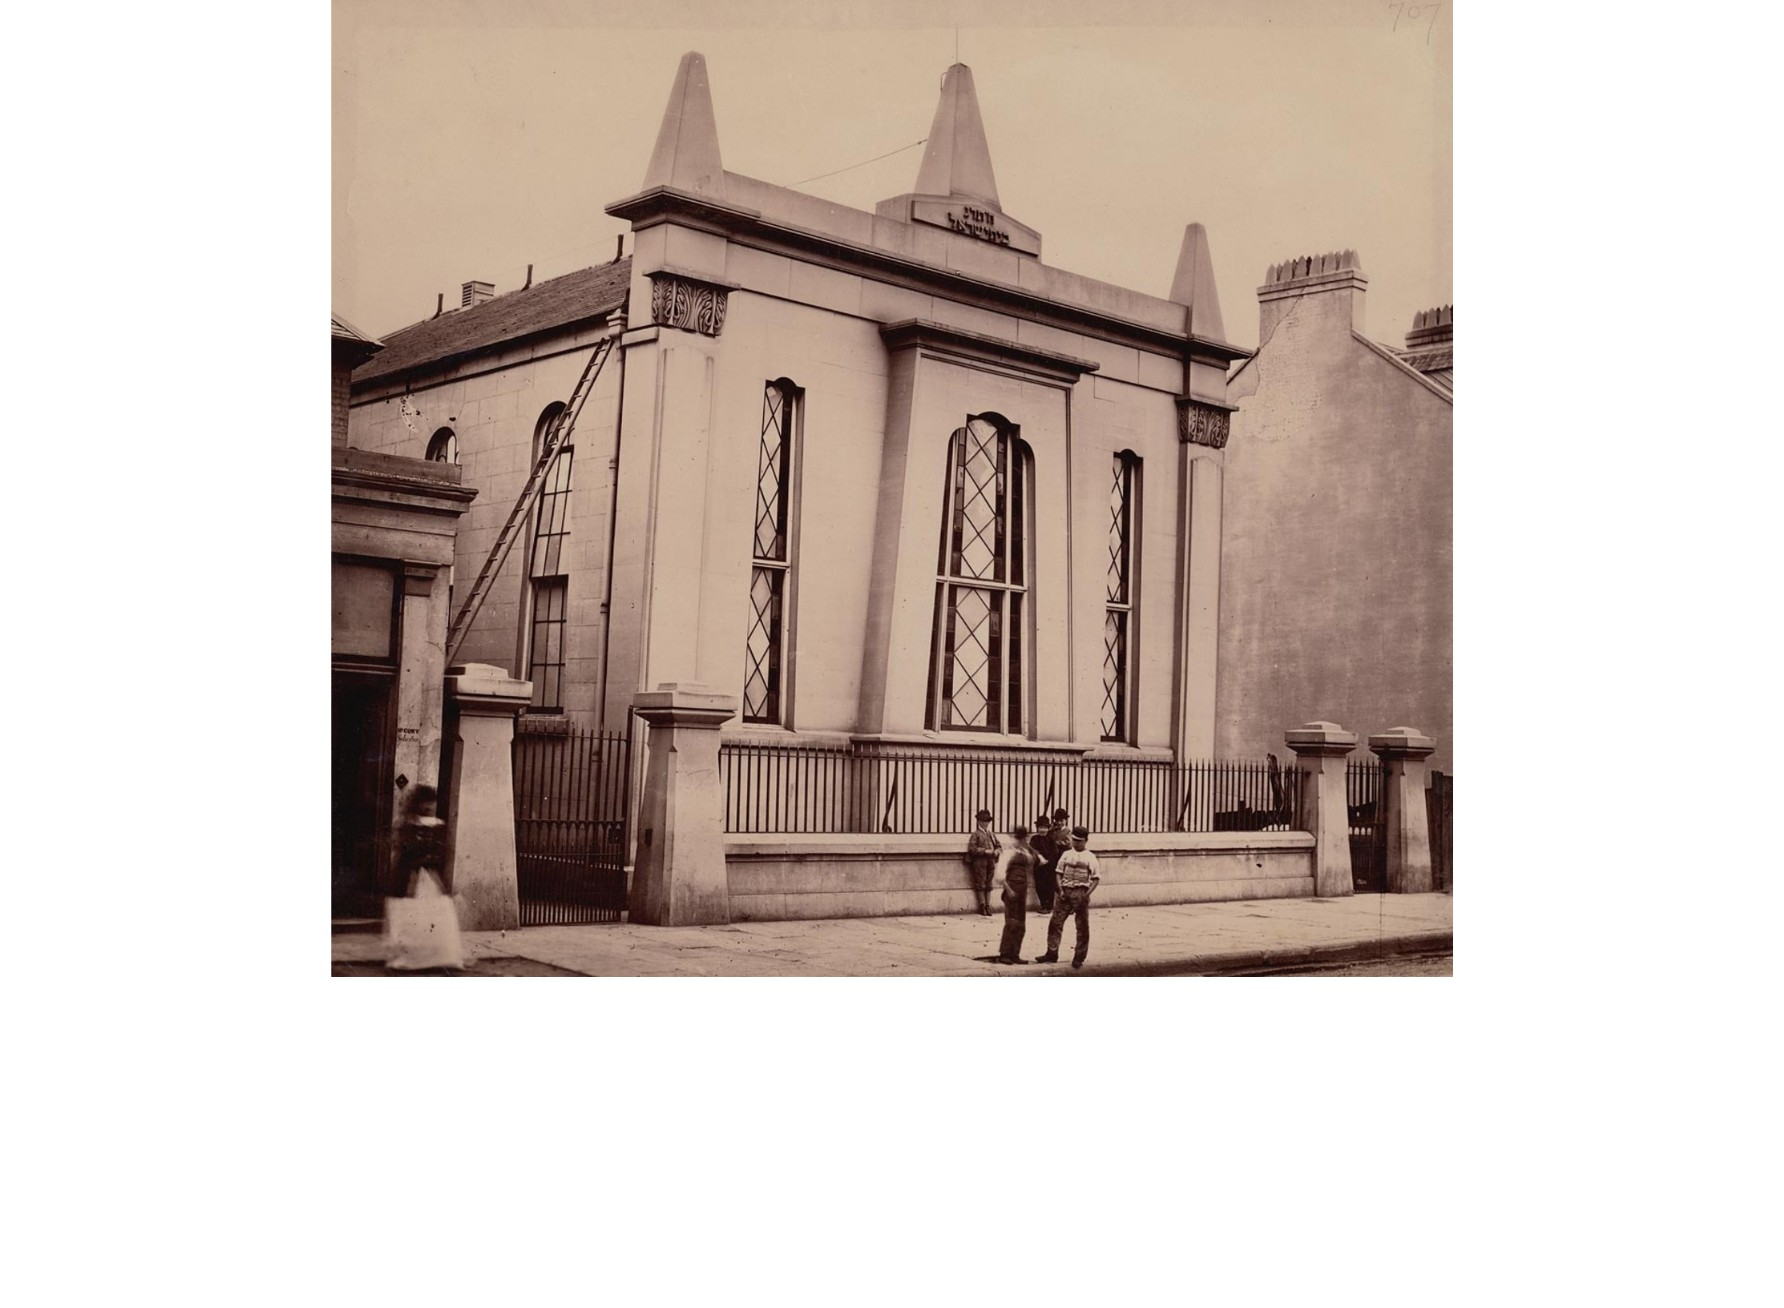 """<span class=""""slider_description"""">2 of 6. A rare 1870s photograph of Australia's oldest synagogue, the 'York Street Synagogue' in Sydney which stood near the Town Hall until 1878. No interior photo is known.</span>"""